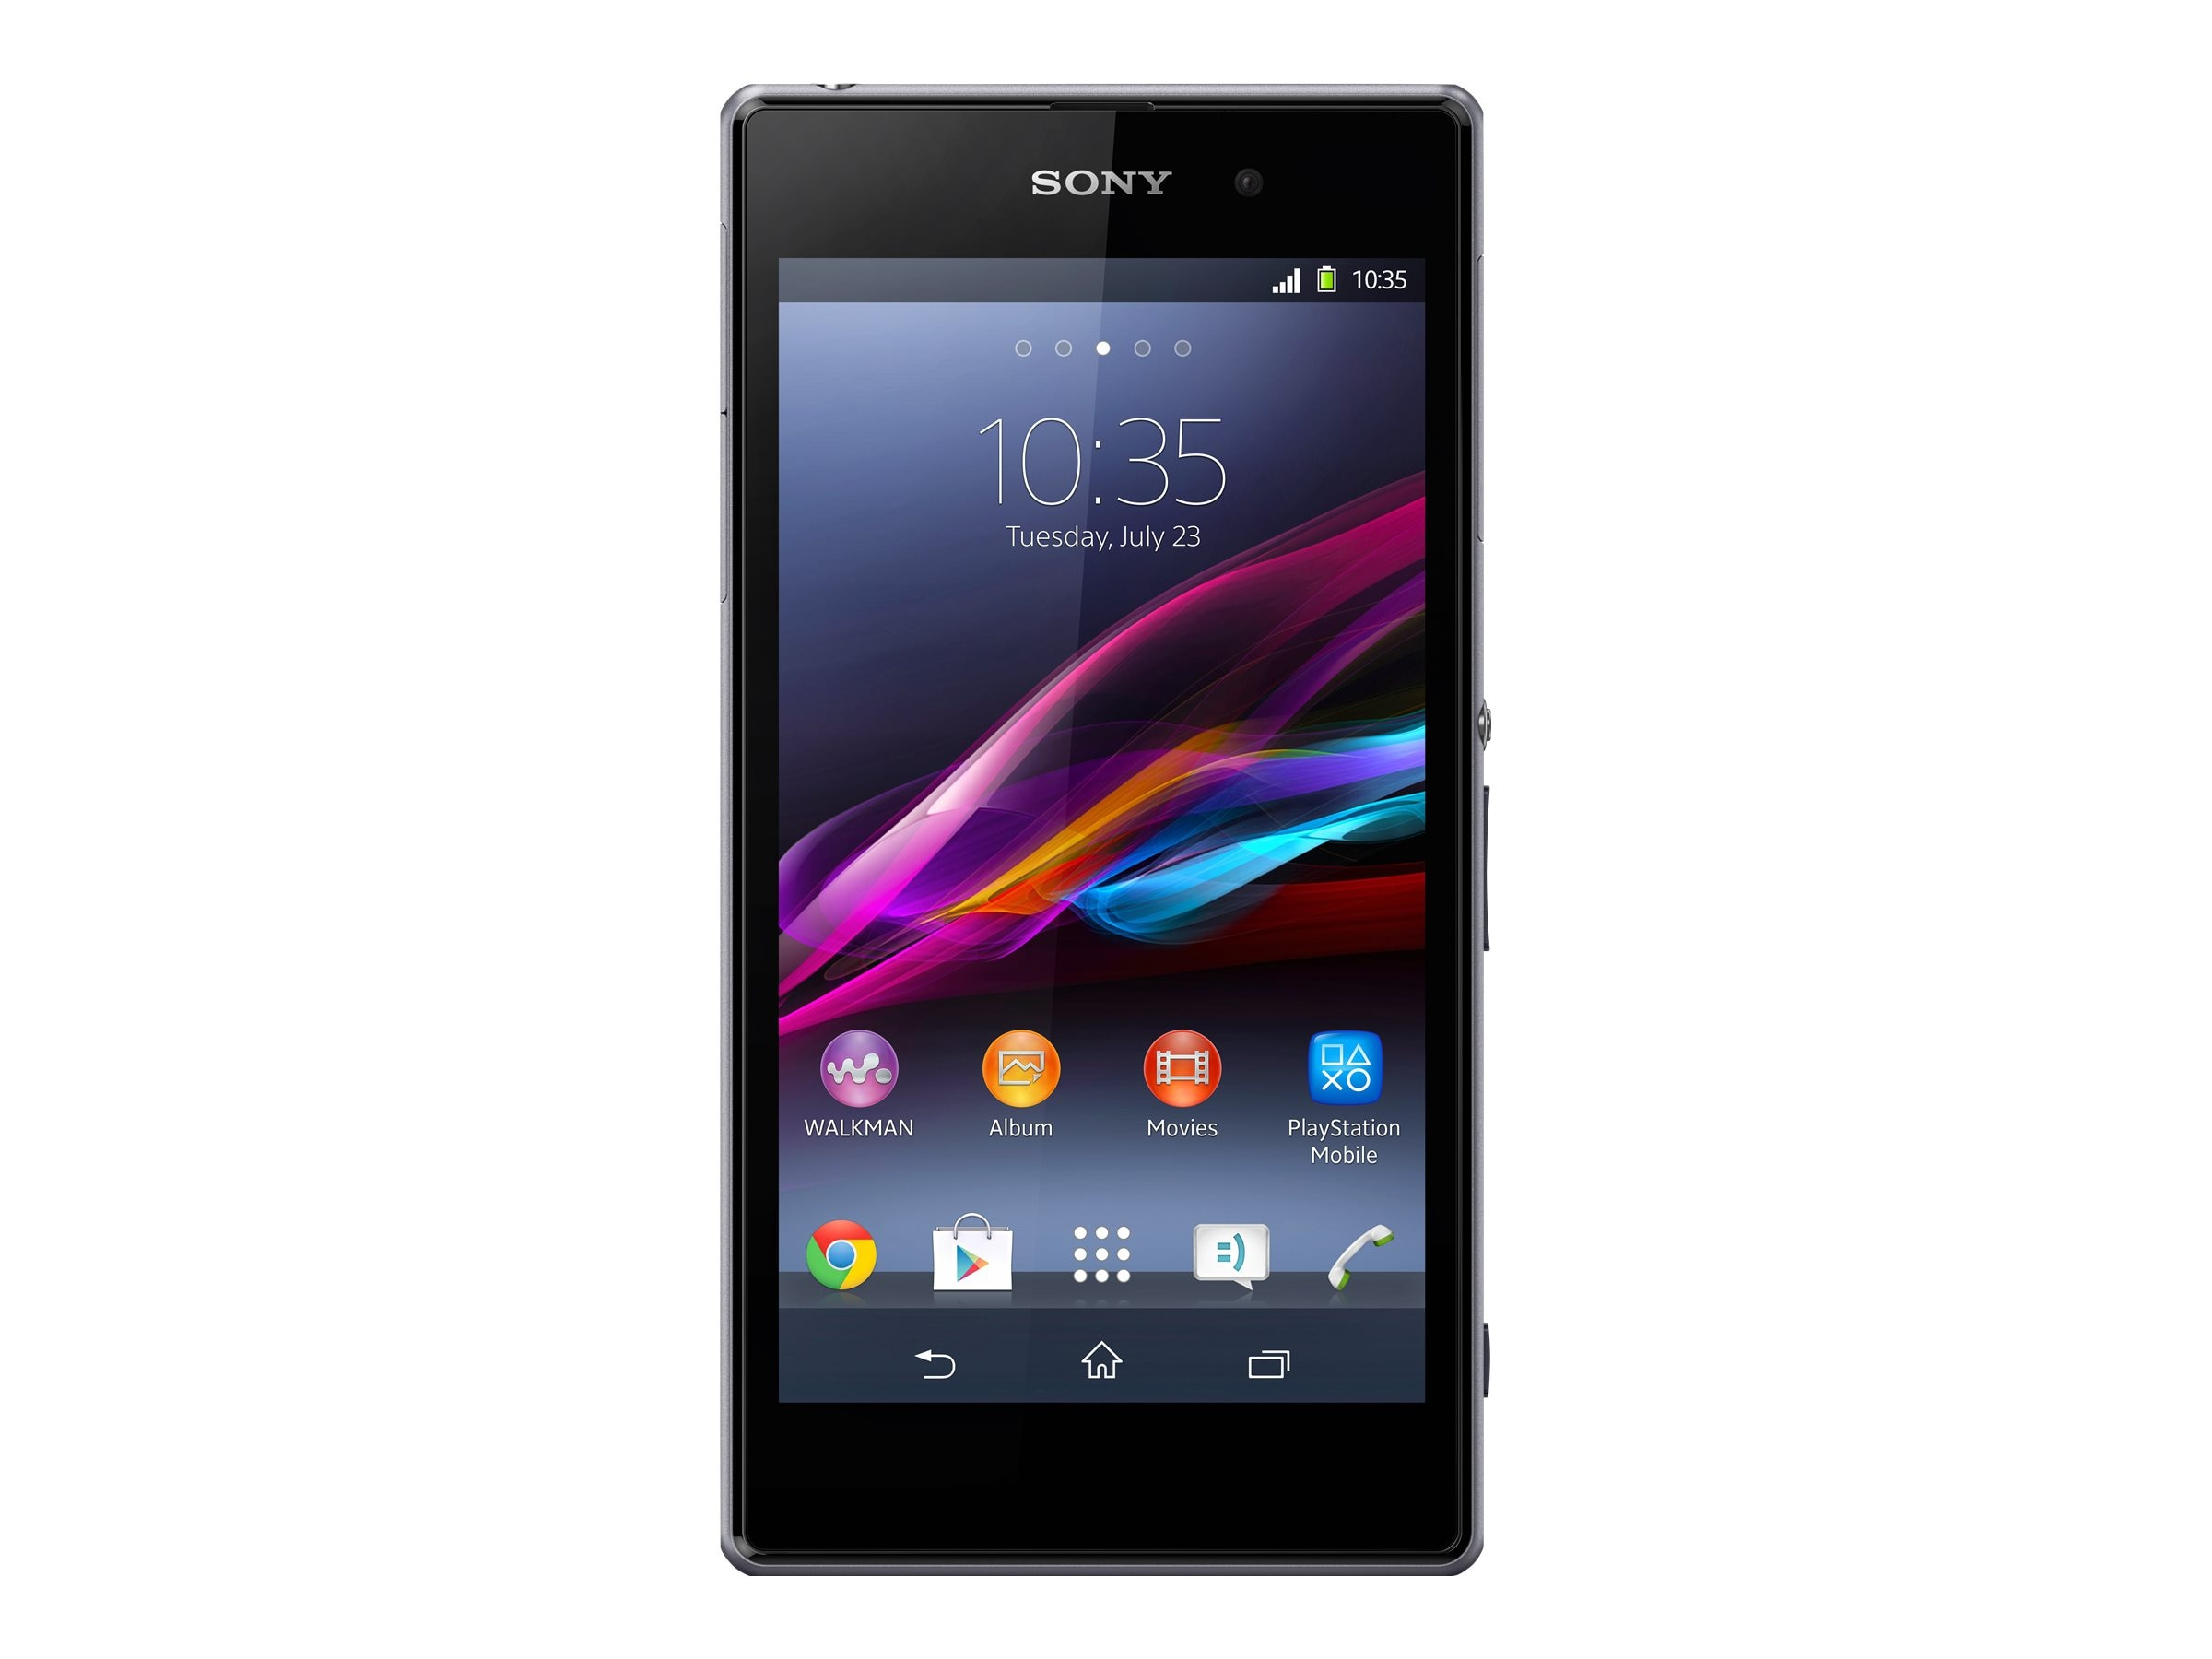 Sony XPeria Z1 LTE C6906 Smartphone - Black, 1276-7850, 16793906, Cellular Phones